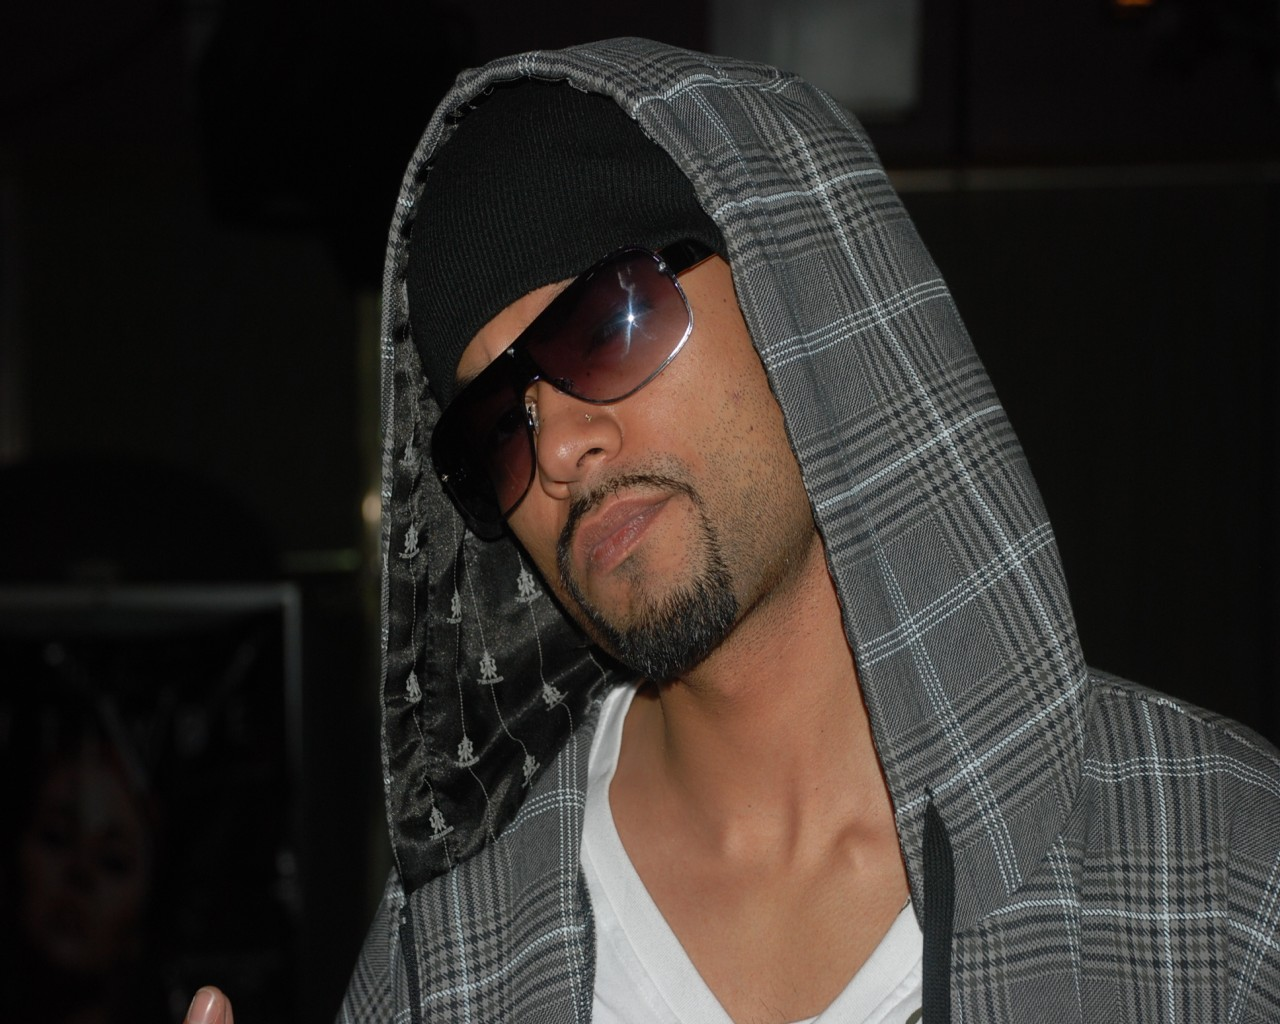 Bohemia Hd Images - The Best Image 2017